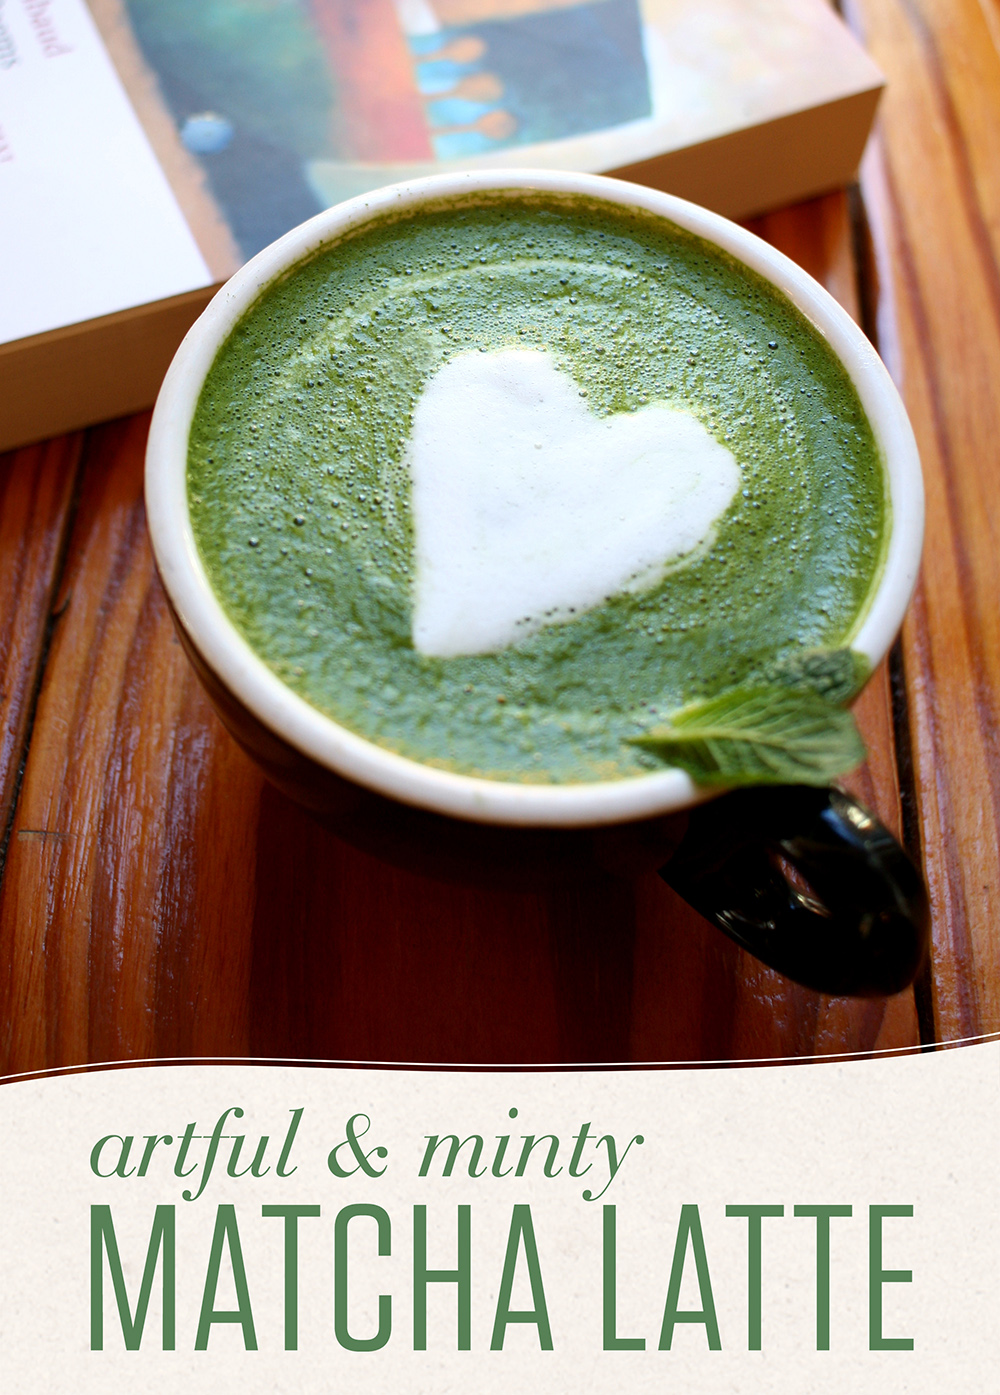 Perfectly steamed milk is the key to an artful matcha latte. Try this simple mint-infused recipe, complete with tips for the budding latte arTEAst!